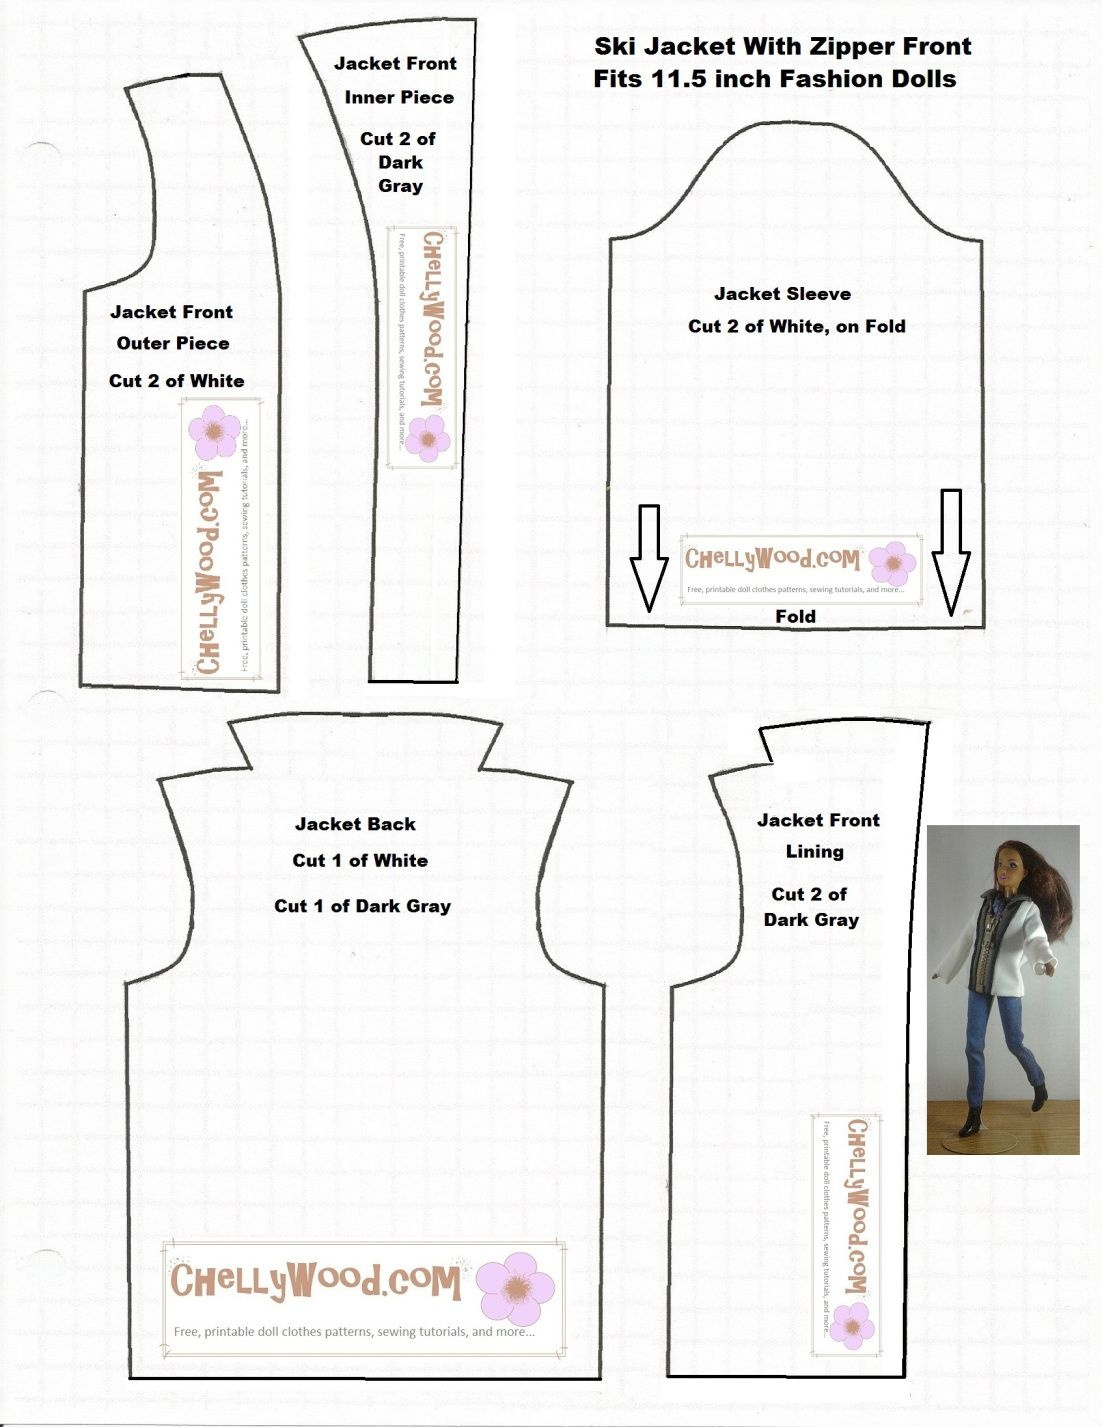 Image Of Printable Sewing Pattern For A Ski Coat Or Winter Jacket To - Free Printable Sewing Patterns